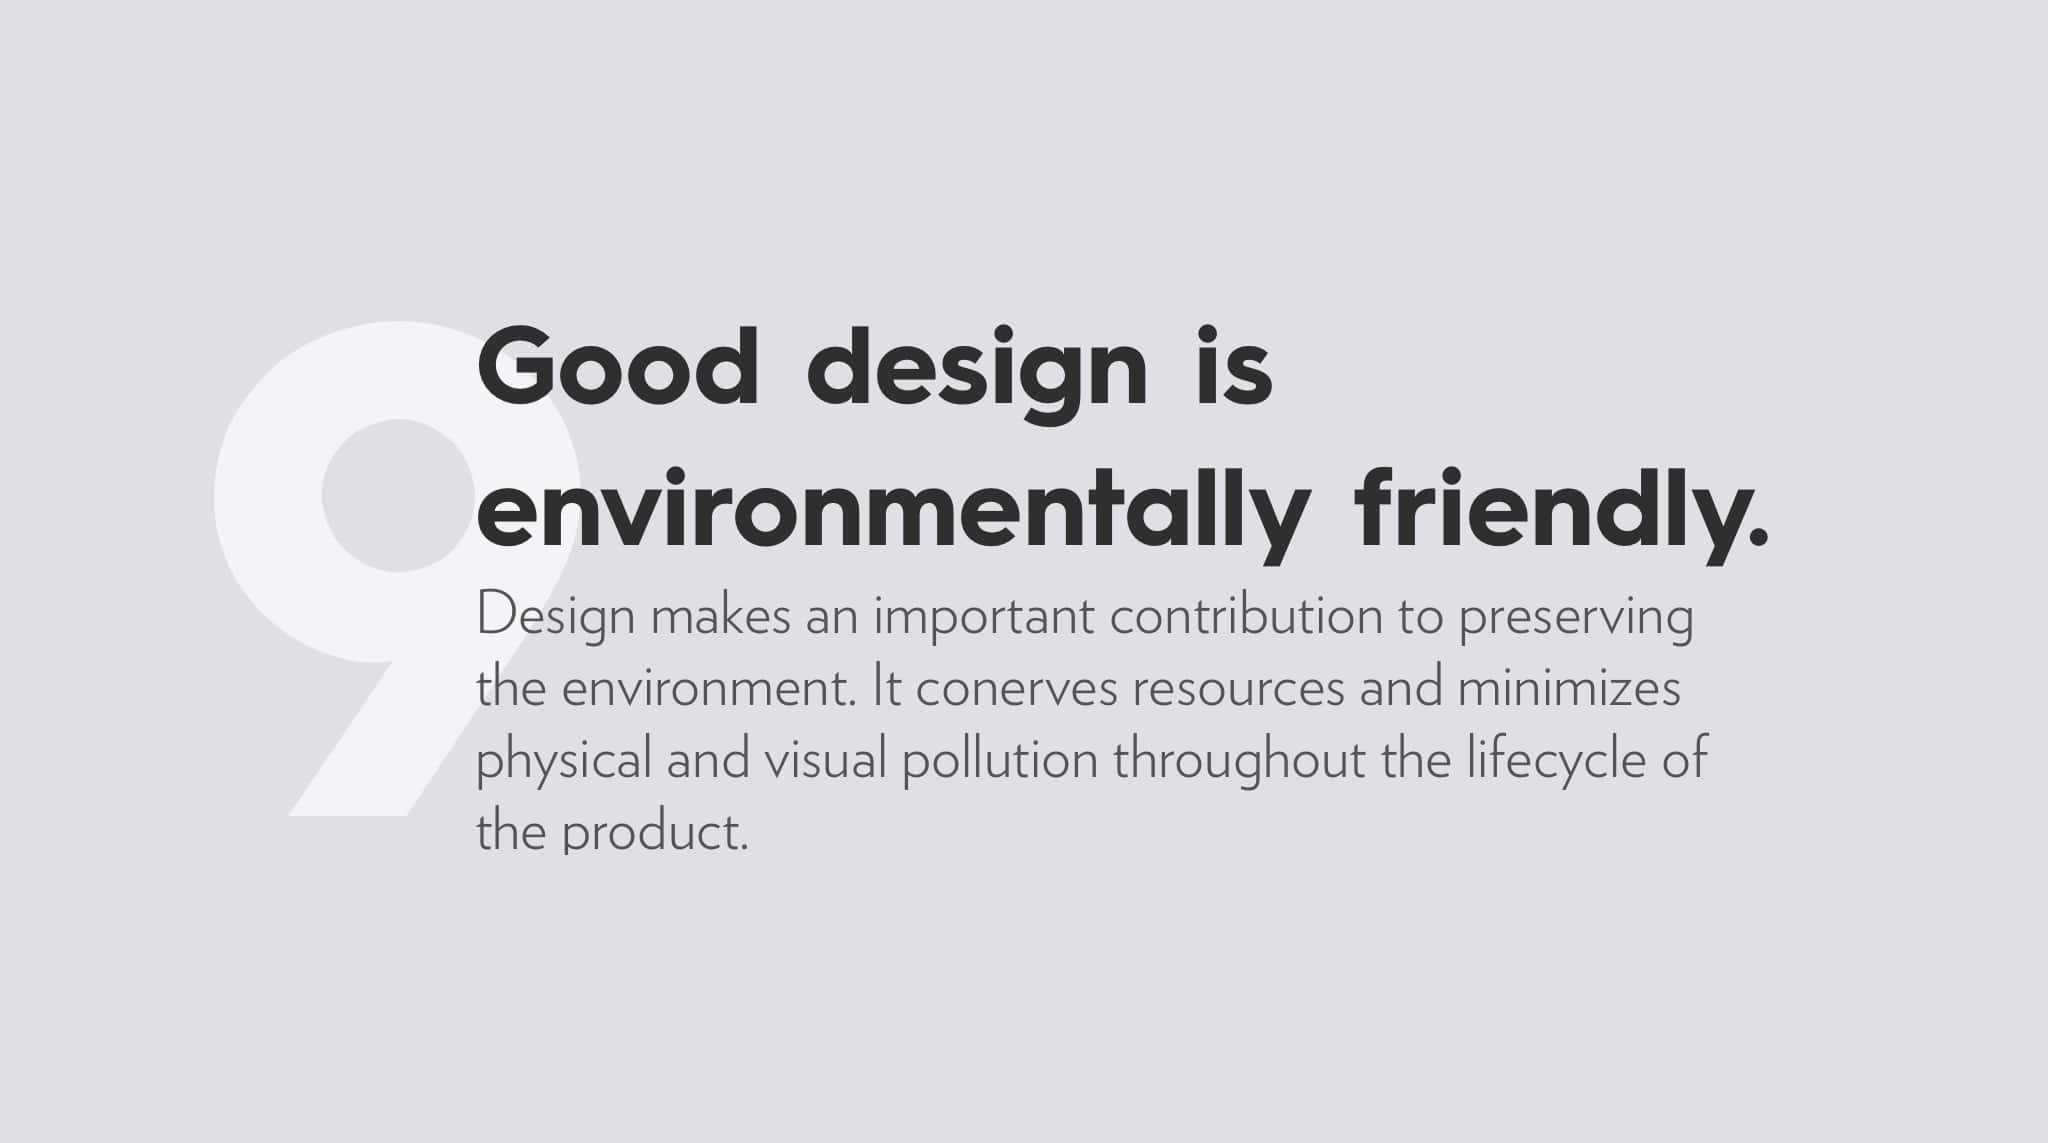 Ten Principles For Good Design by Dieter Rams, good design  is environmentally friendly.